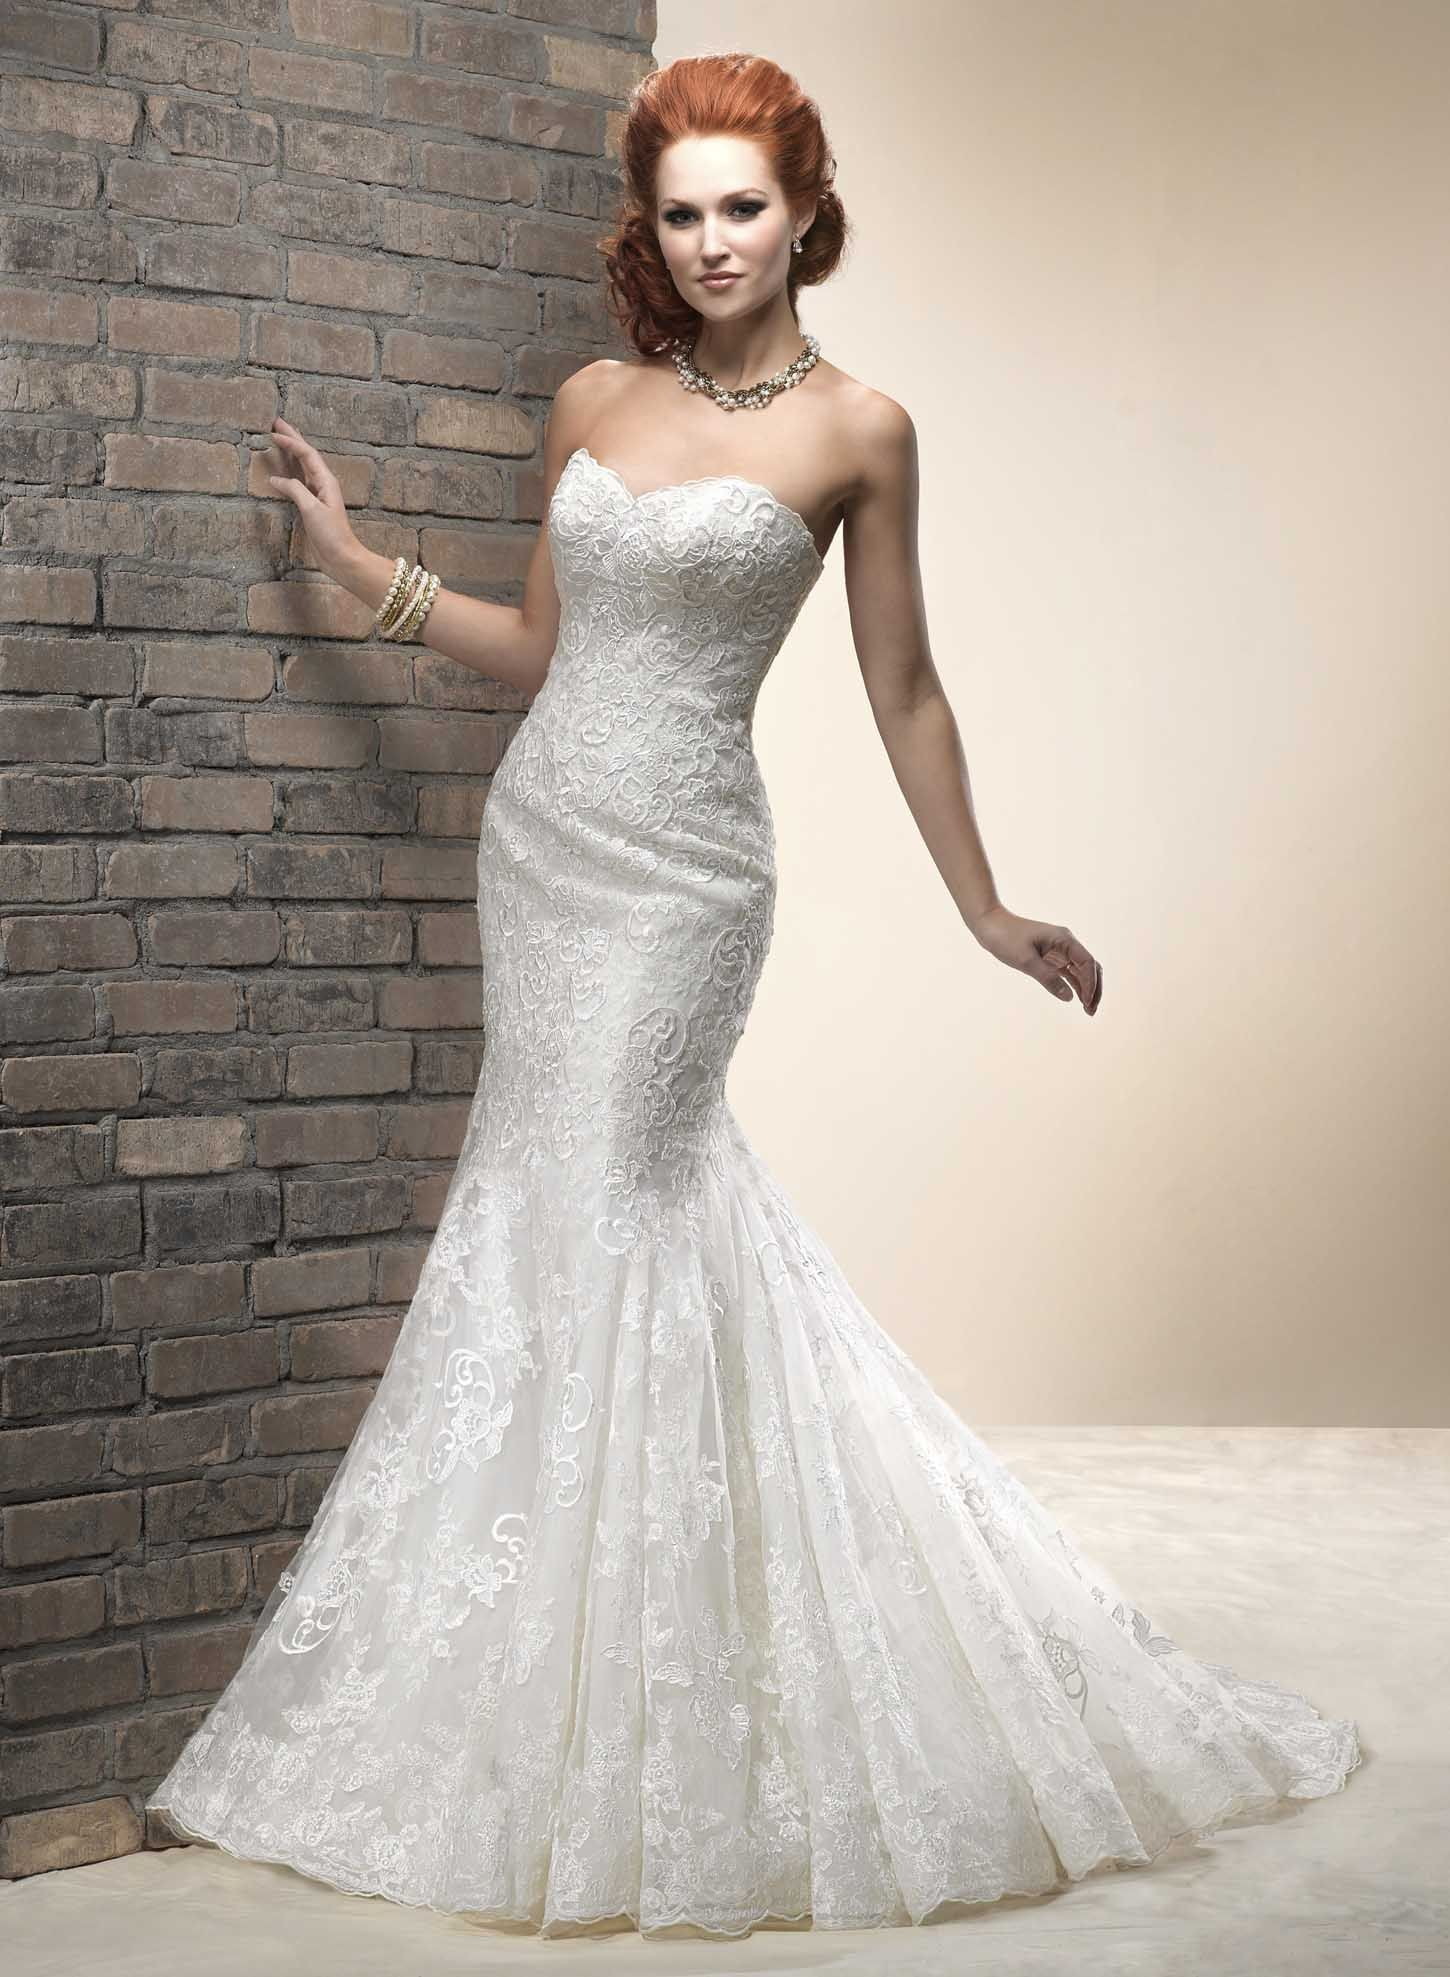 show your beauty in lace wedding dresses on wedding modern wedding dress modern mermaid sweetheart sheath lace wedding dress